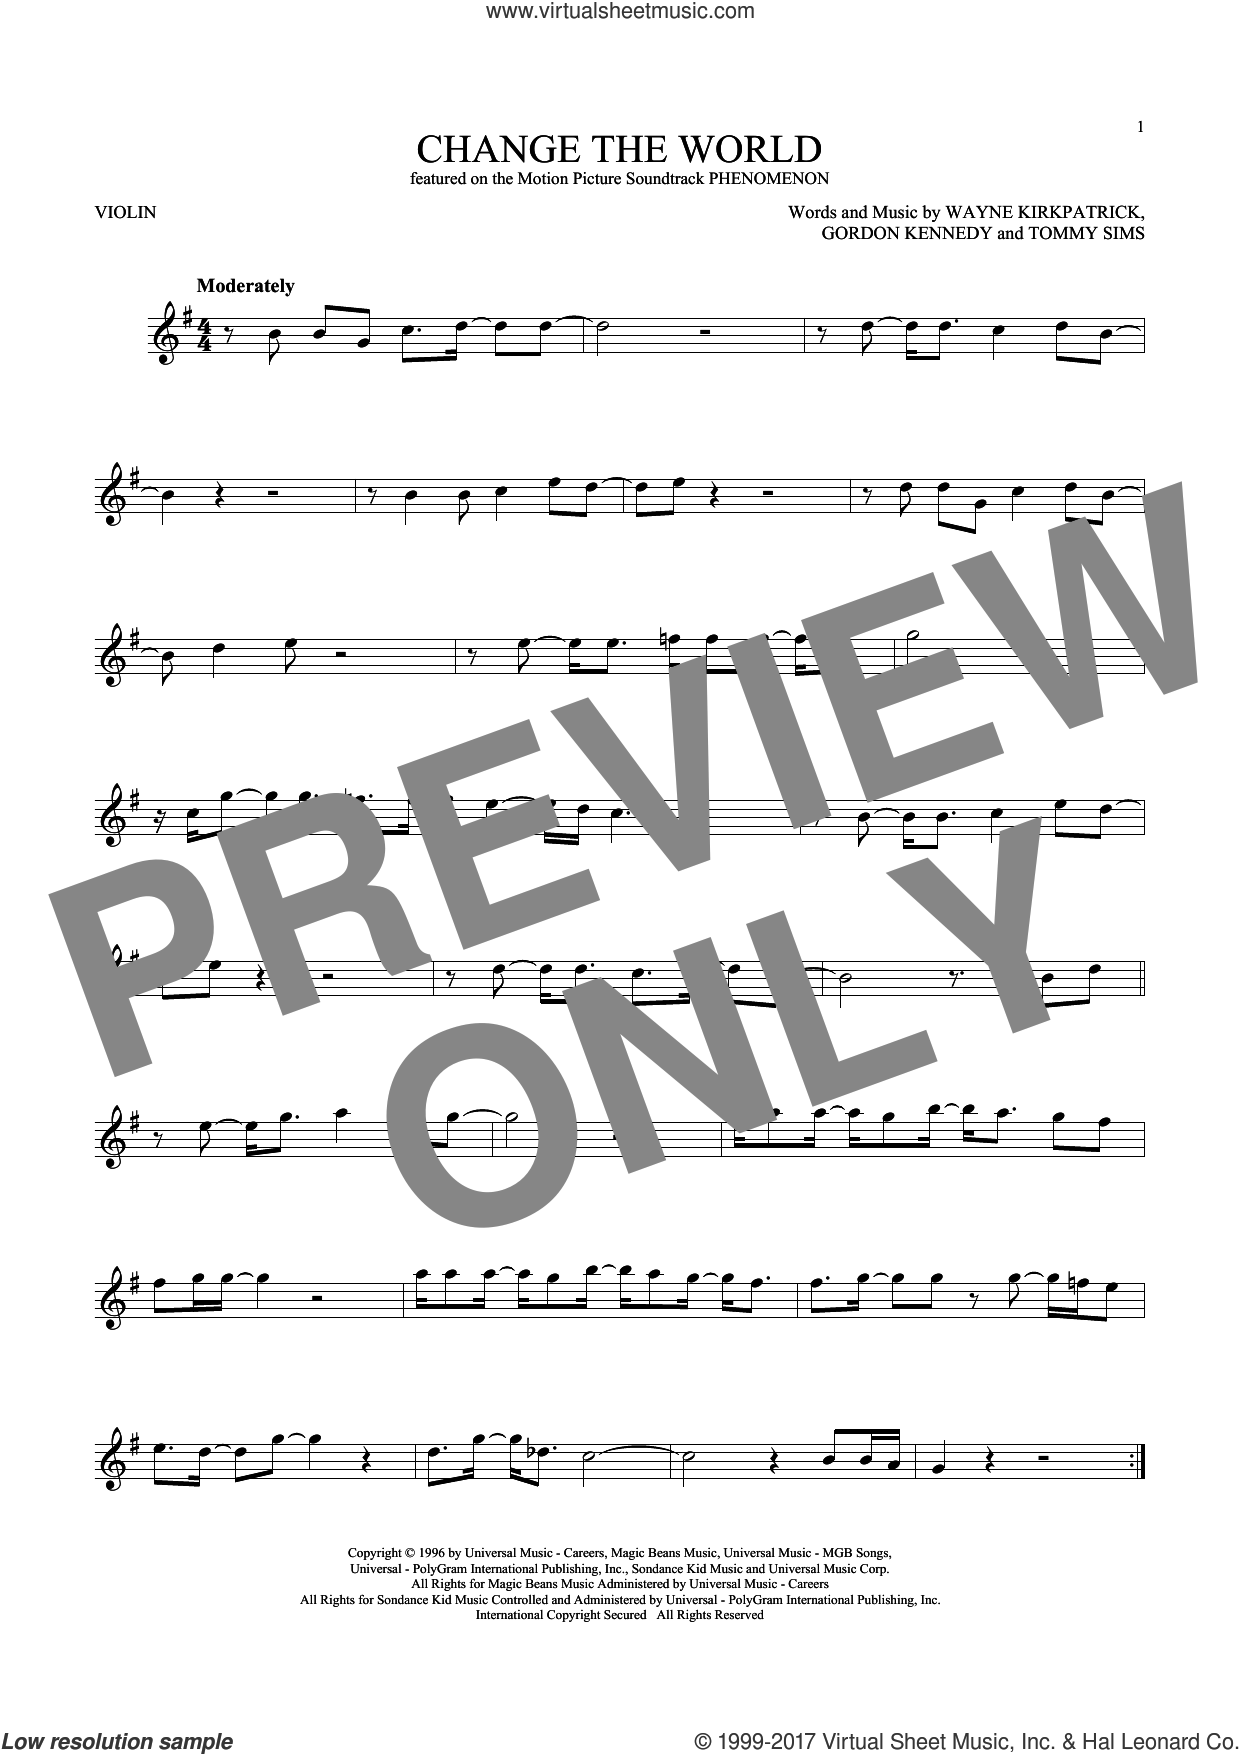 Change The World sheet music for violin solo by Eric Clapton, Wynonna, Gordon Kennedy, Tommy Sims and Wayne Kirkpatrick, intermediate skill level